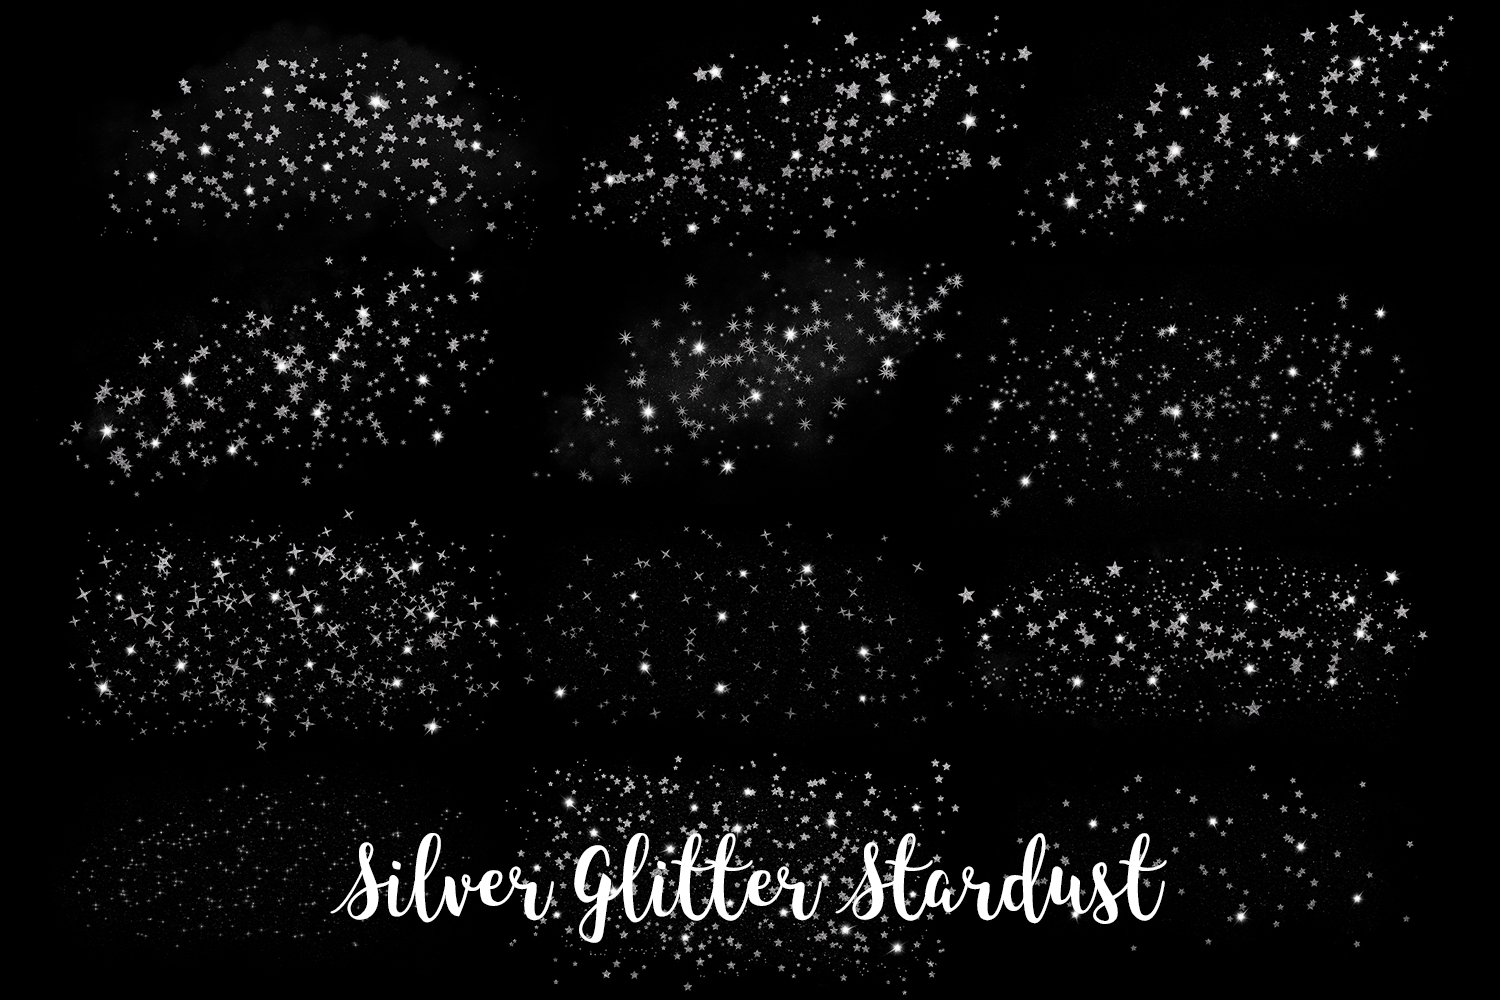 Silver Glitter Stardust, Transparent PNG example image 2